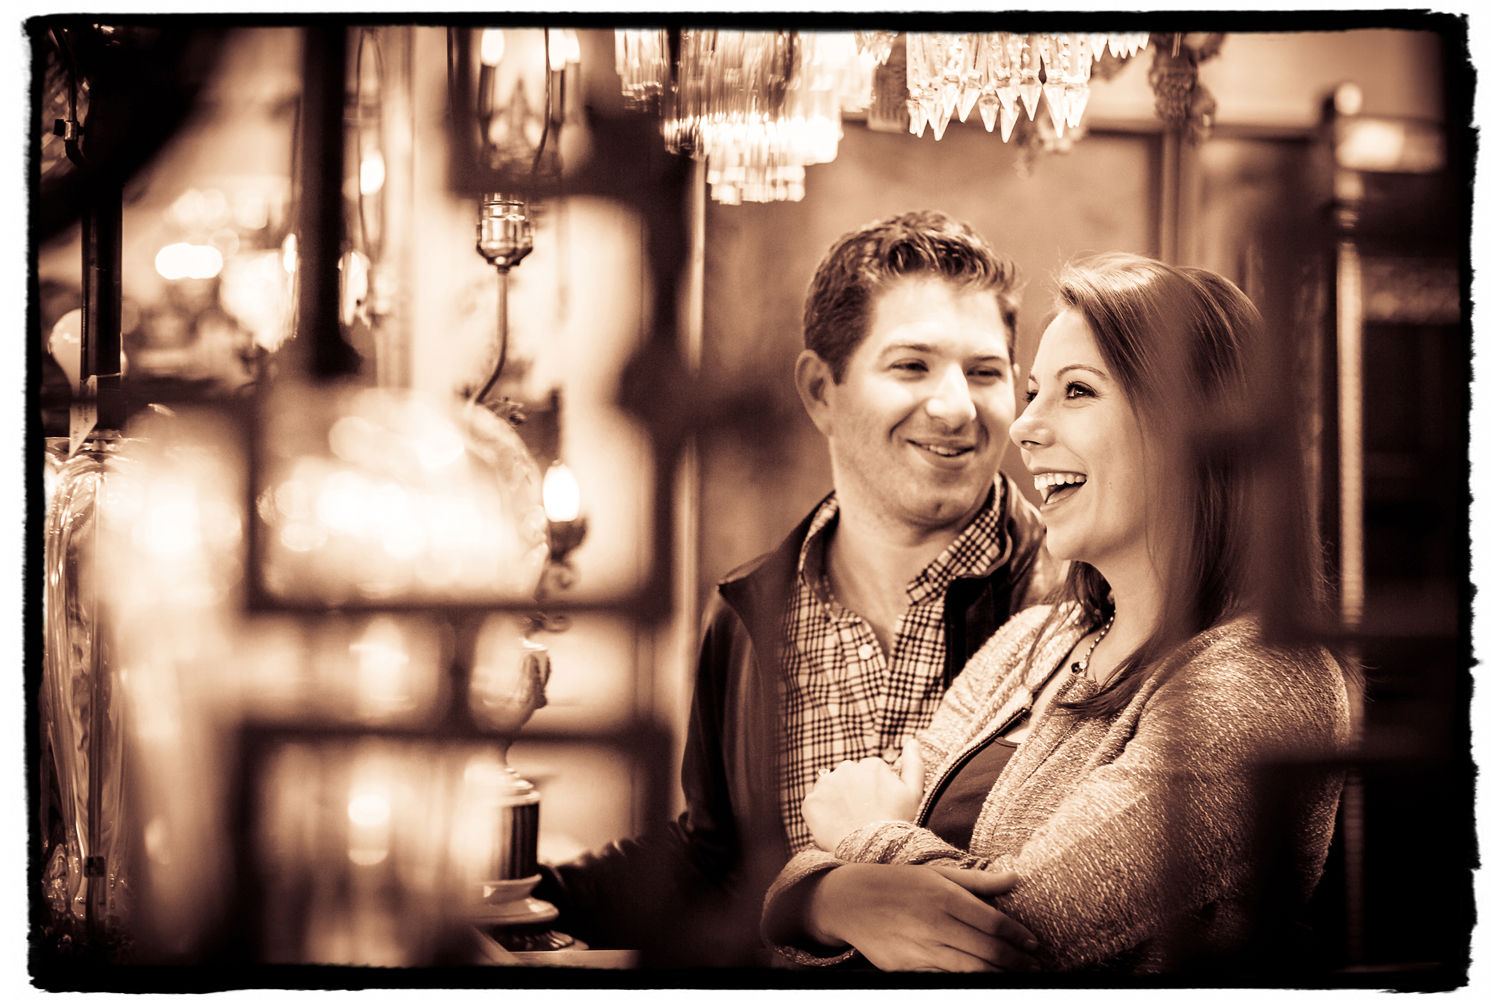 Engagement Portrait: Meghan & Terence check out the crystal chandeliers in the antique store across the street from their building.